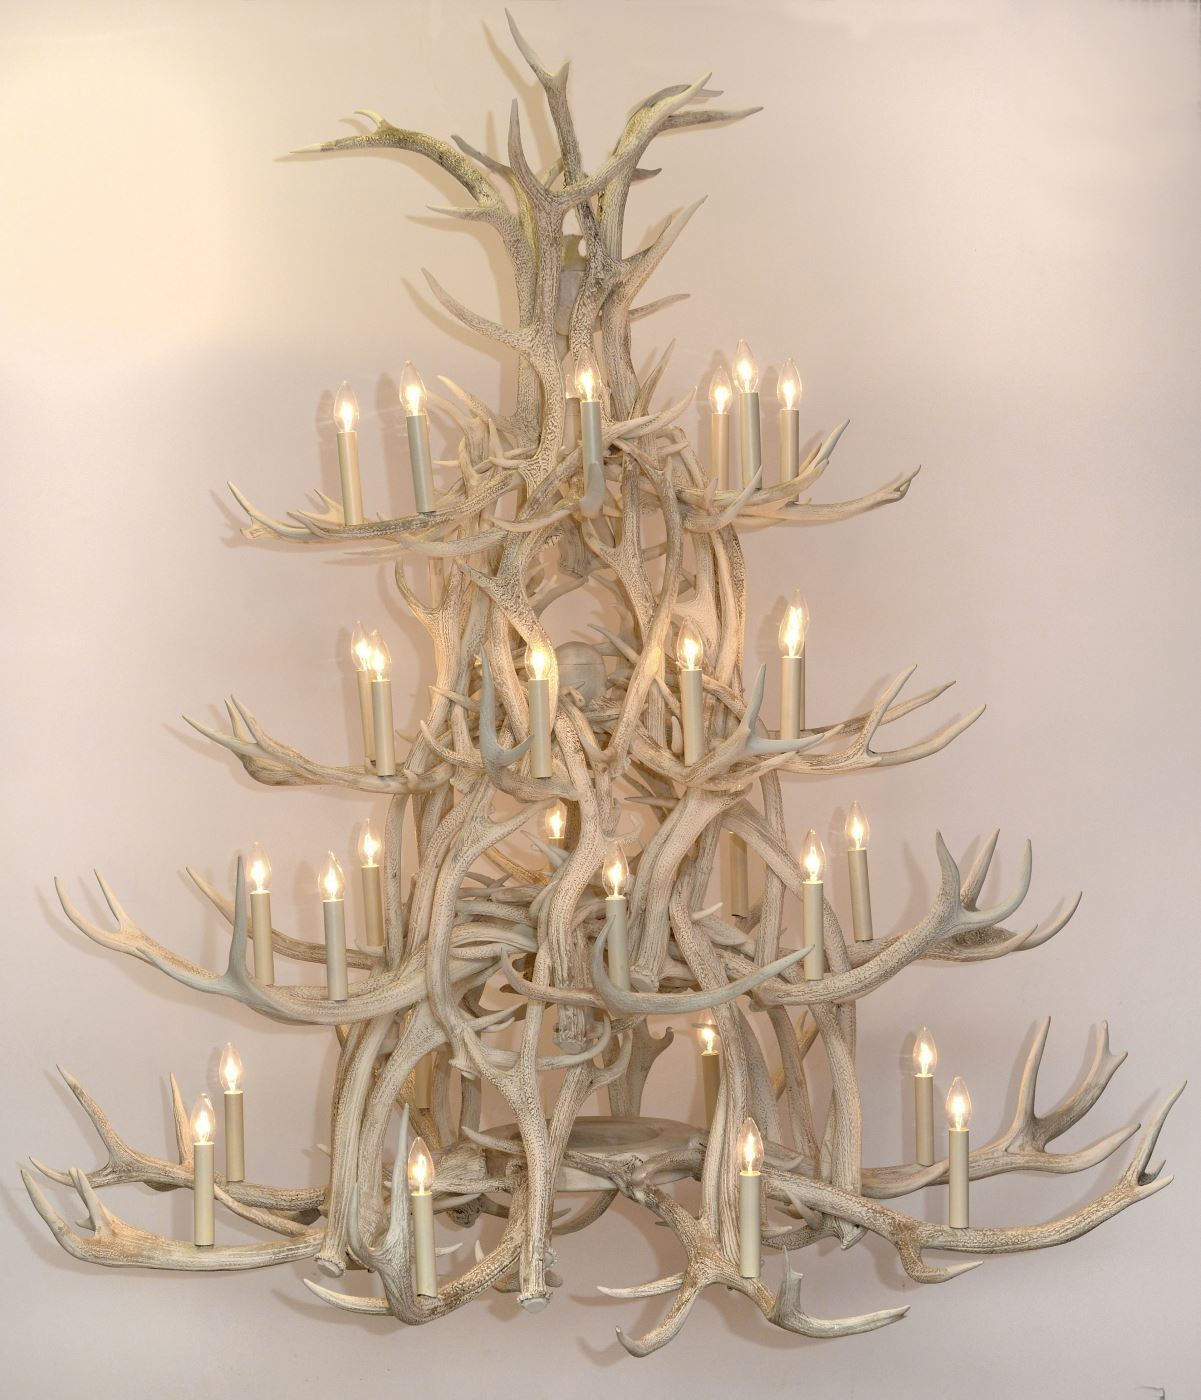 Chandelier - 4-tier painted